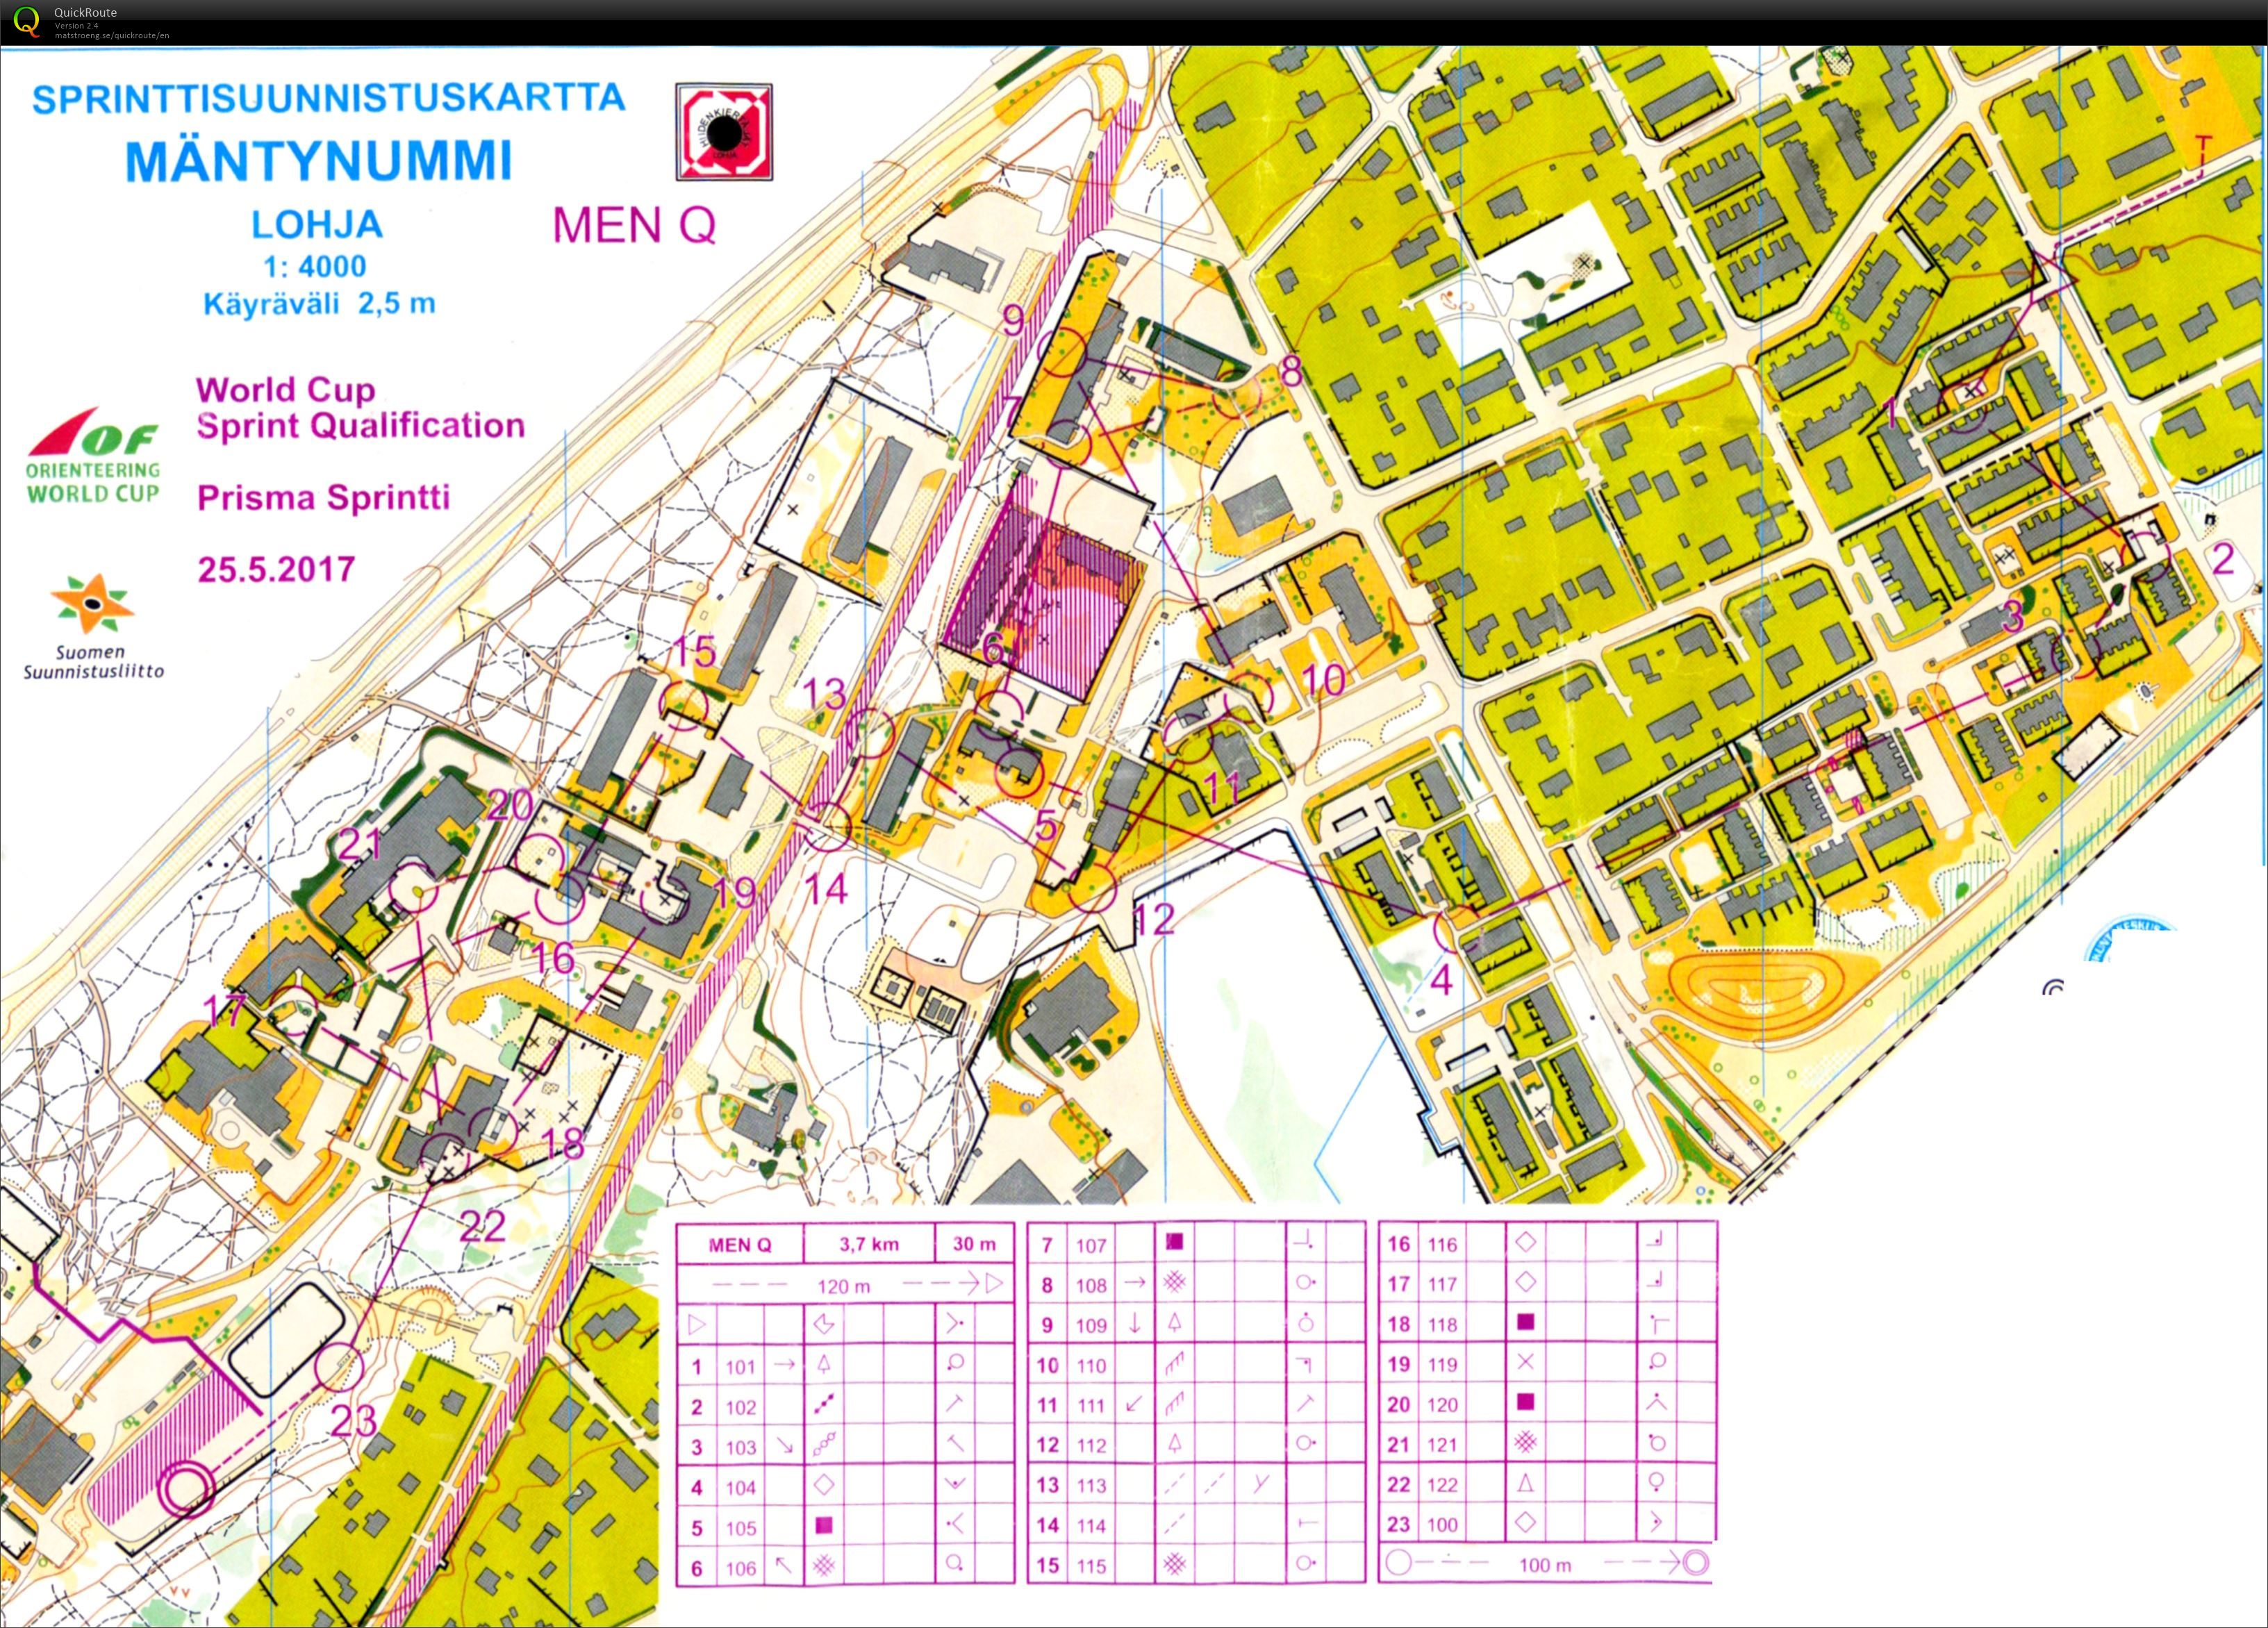 World Cup Sprint Qual May 25th 2017 Orienteering Map from Bryan